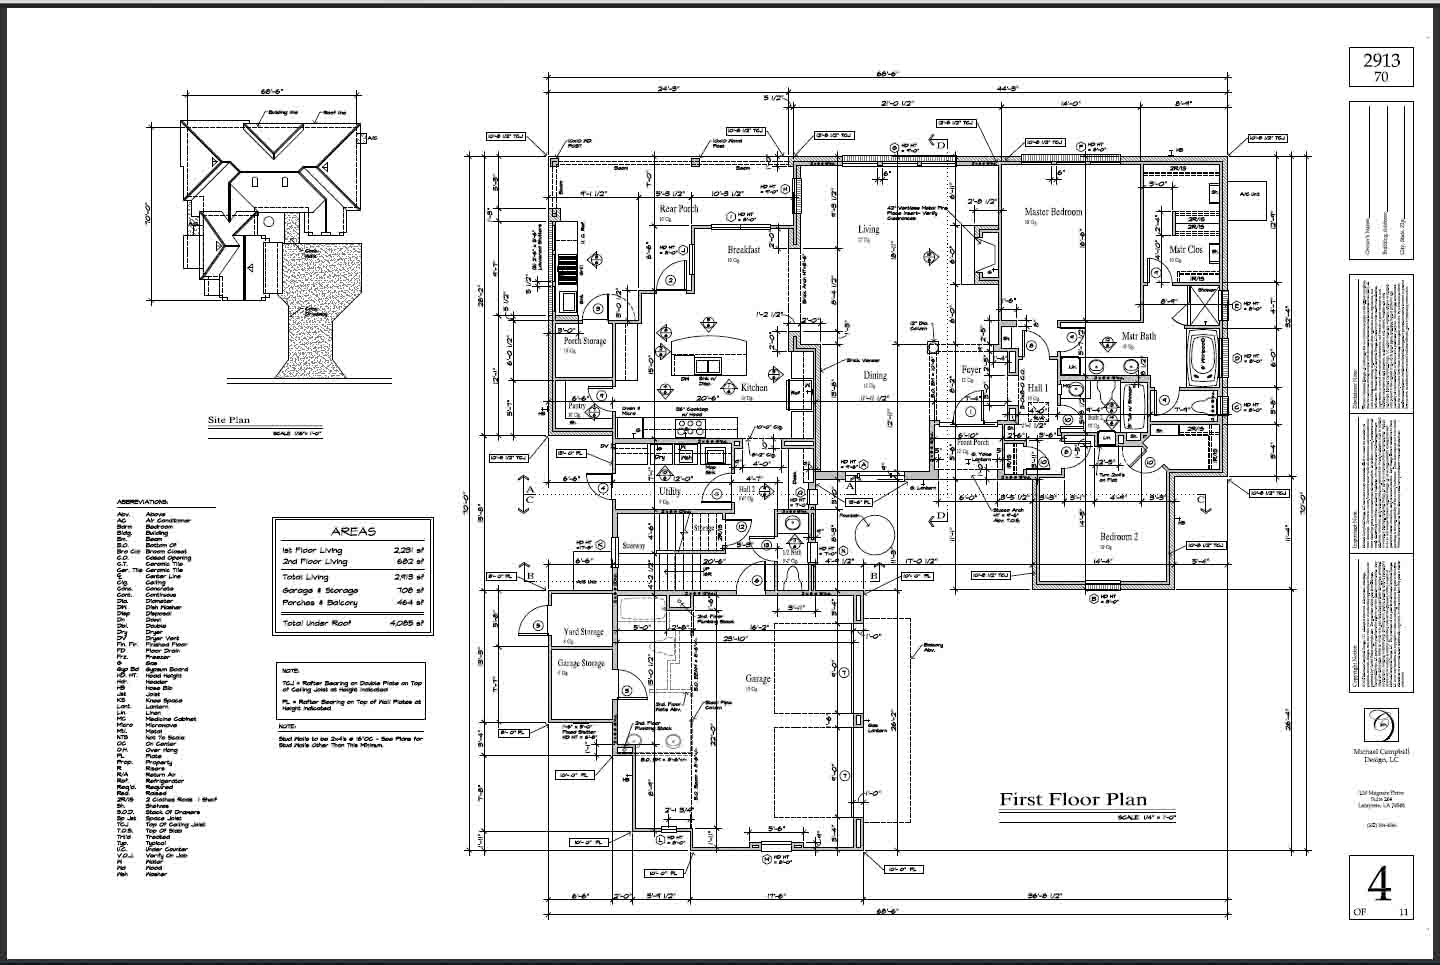 hight resolution of a schematic plan indicating the location of lights switches outlets and other electrical items plans do not include load calculations circuiting or